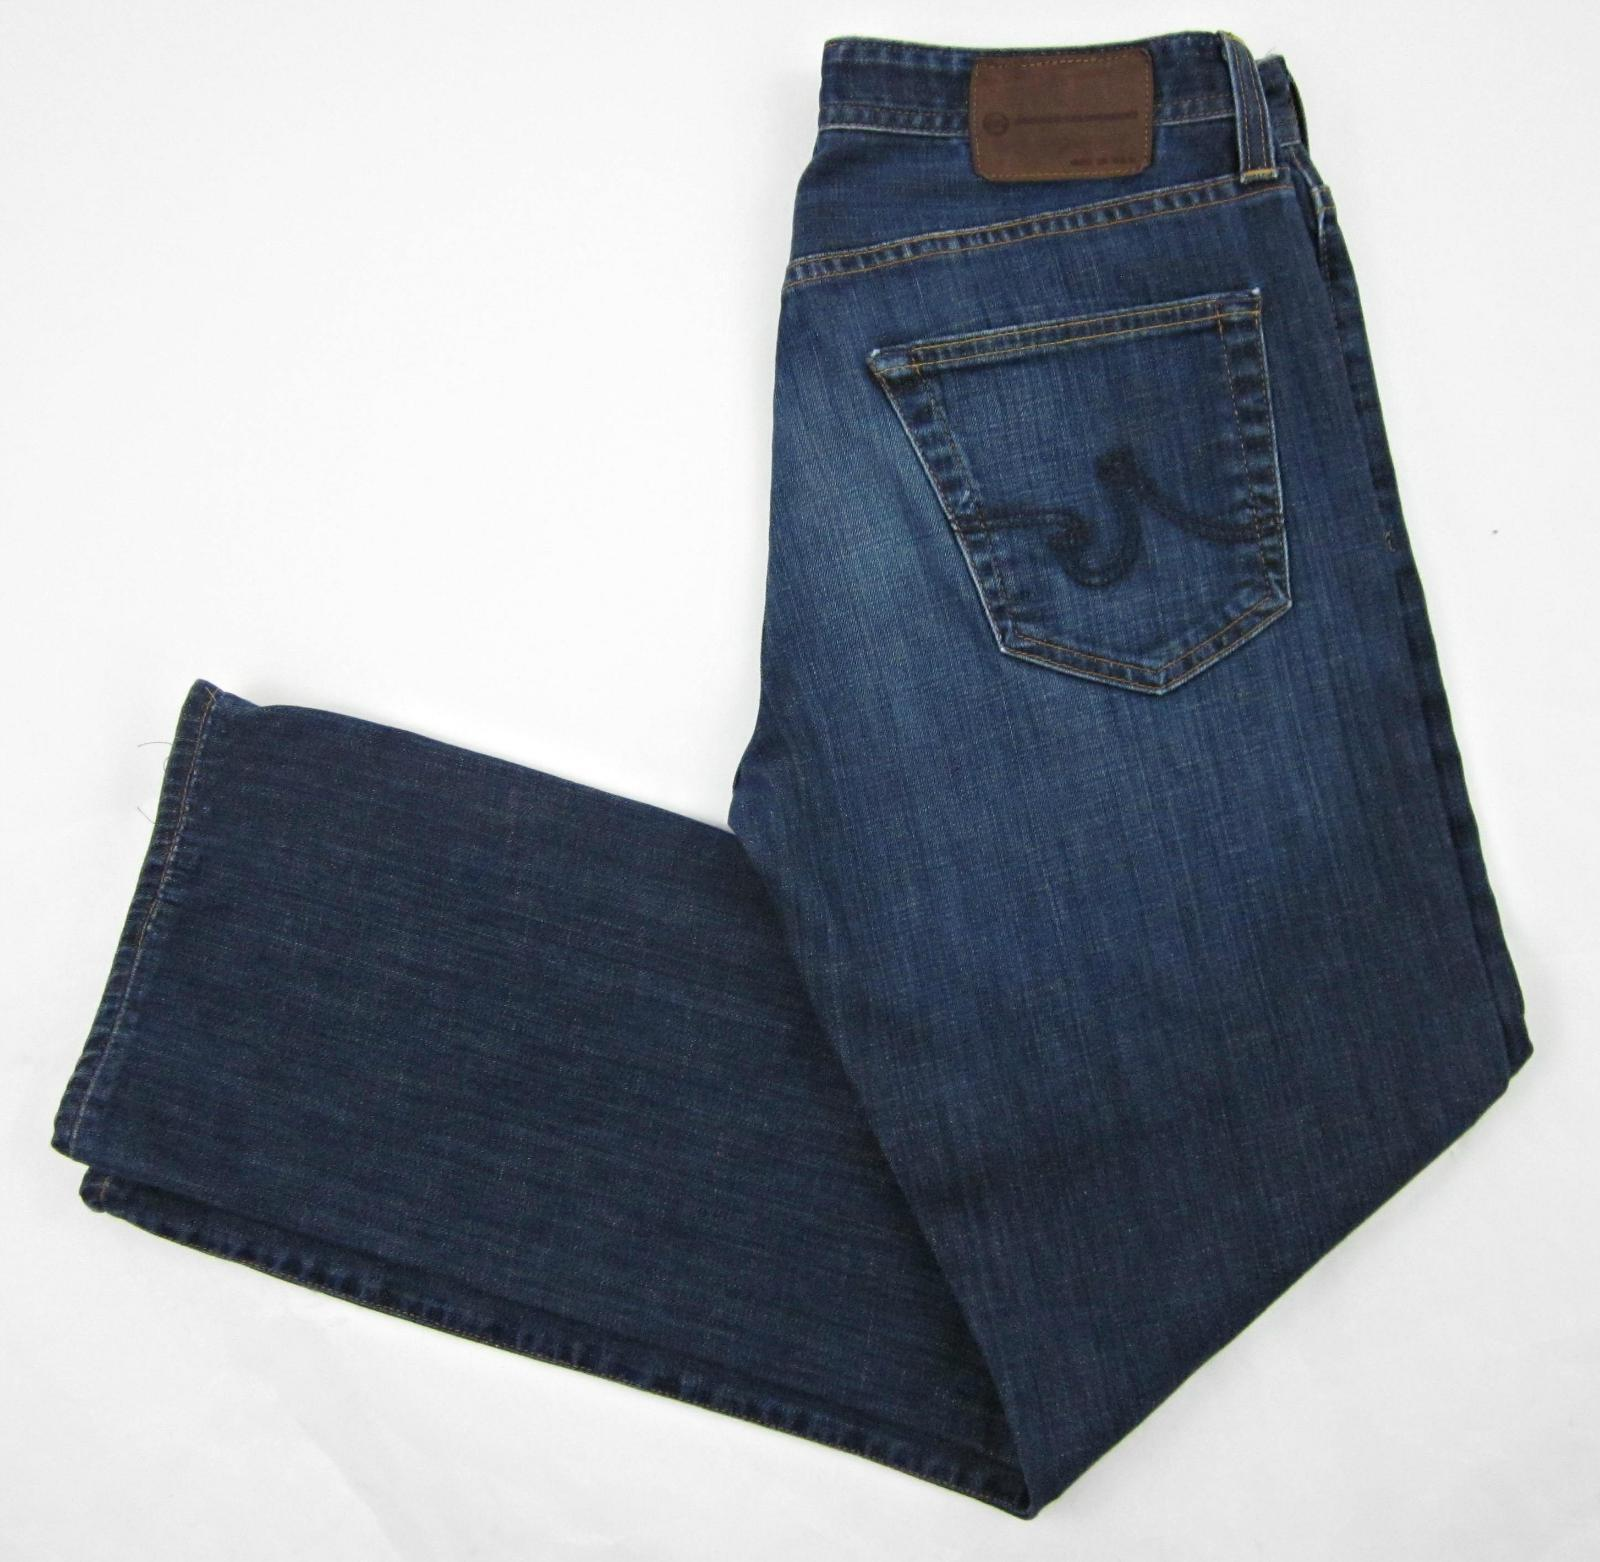 Men's AG Adriano goldschmied the Predégé Straight Leg Jeans Sz. 32x34